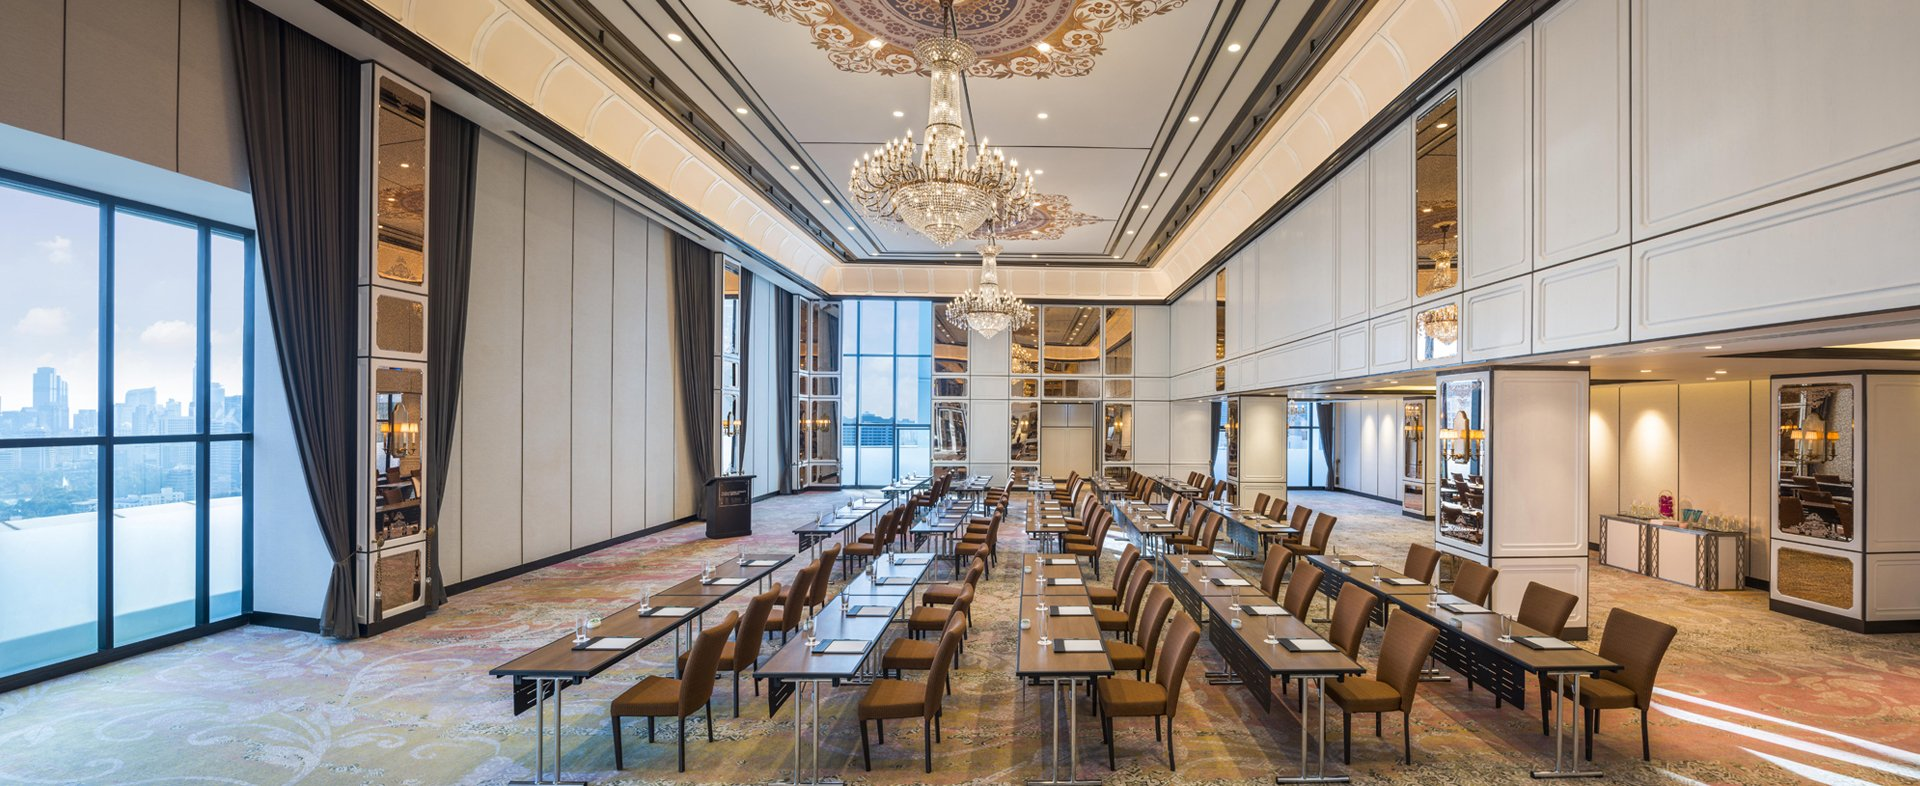 THE ATHENEE HOTEL, A LUXURY COLLECTION HOTEL, BANGKOK